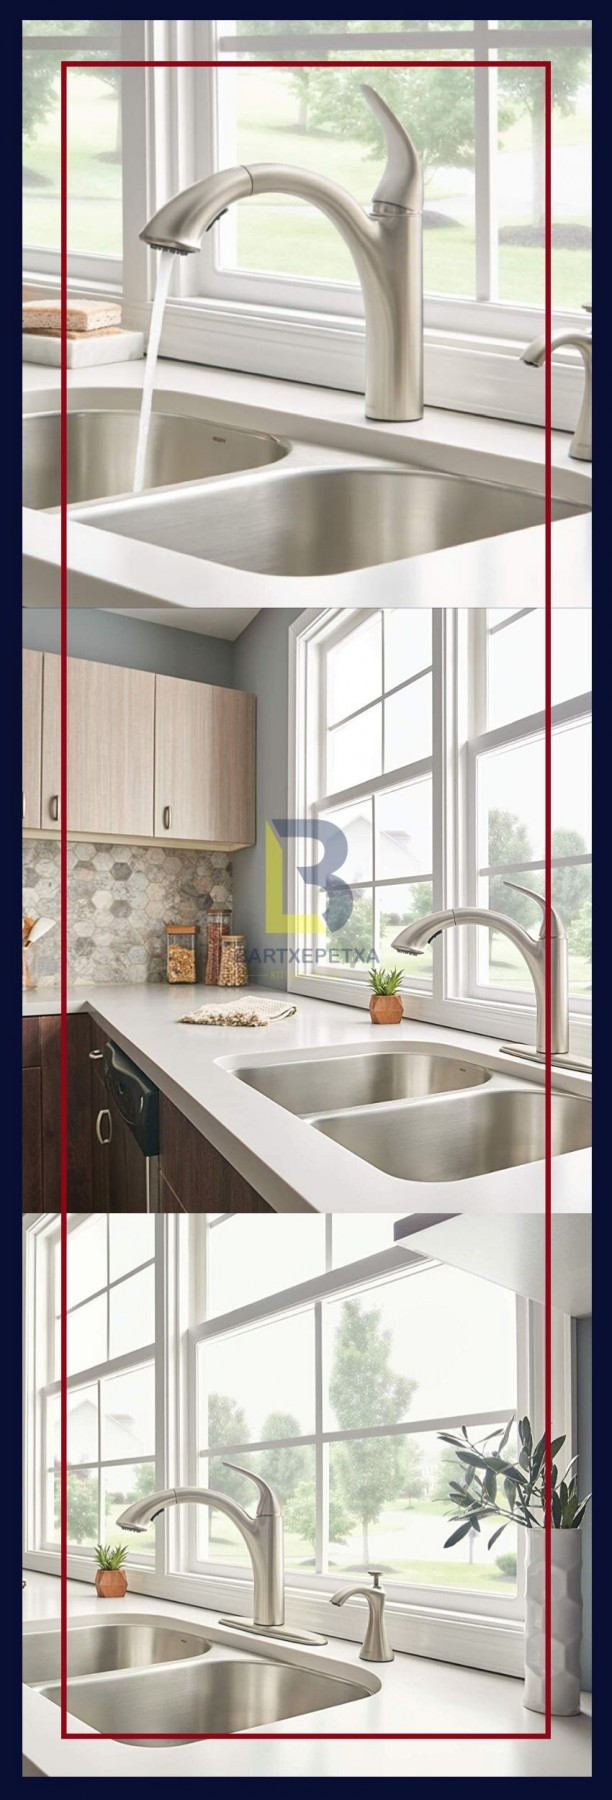 white soap dispenser for kitchen sink